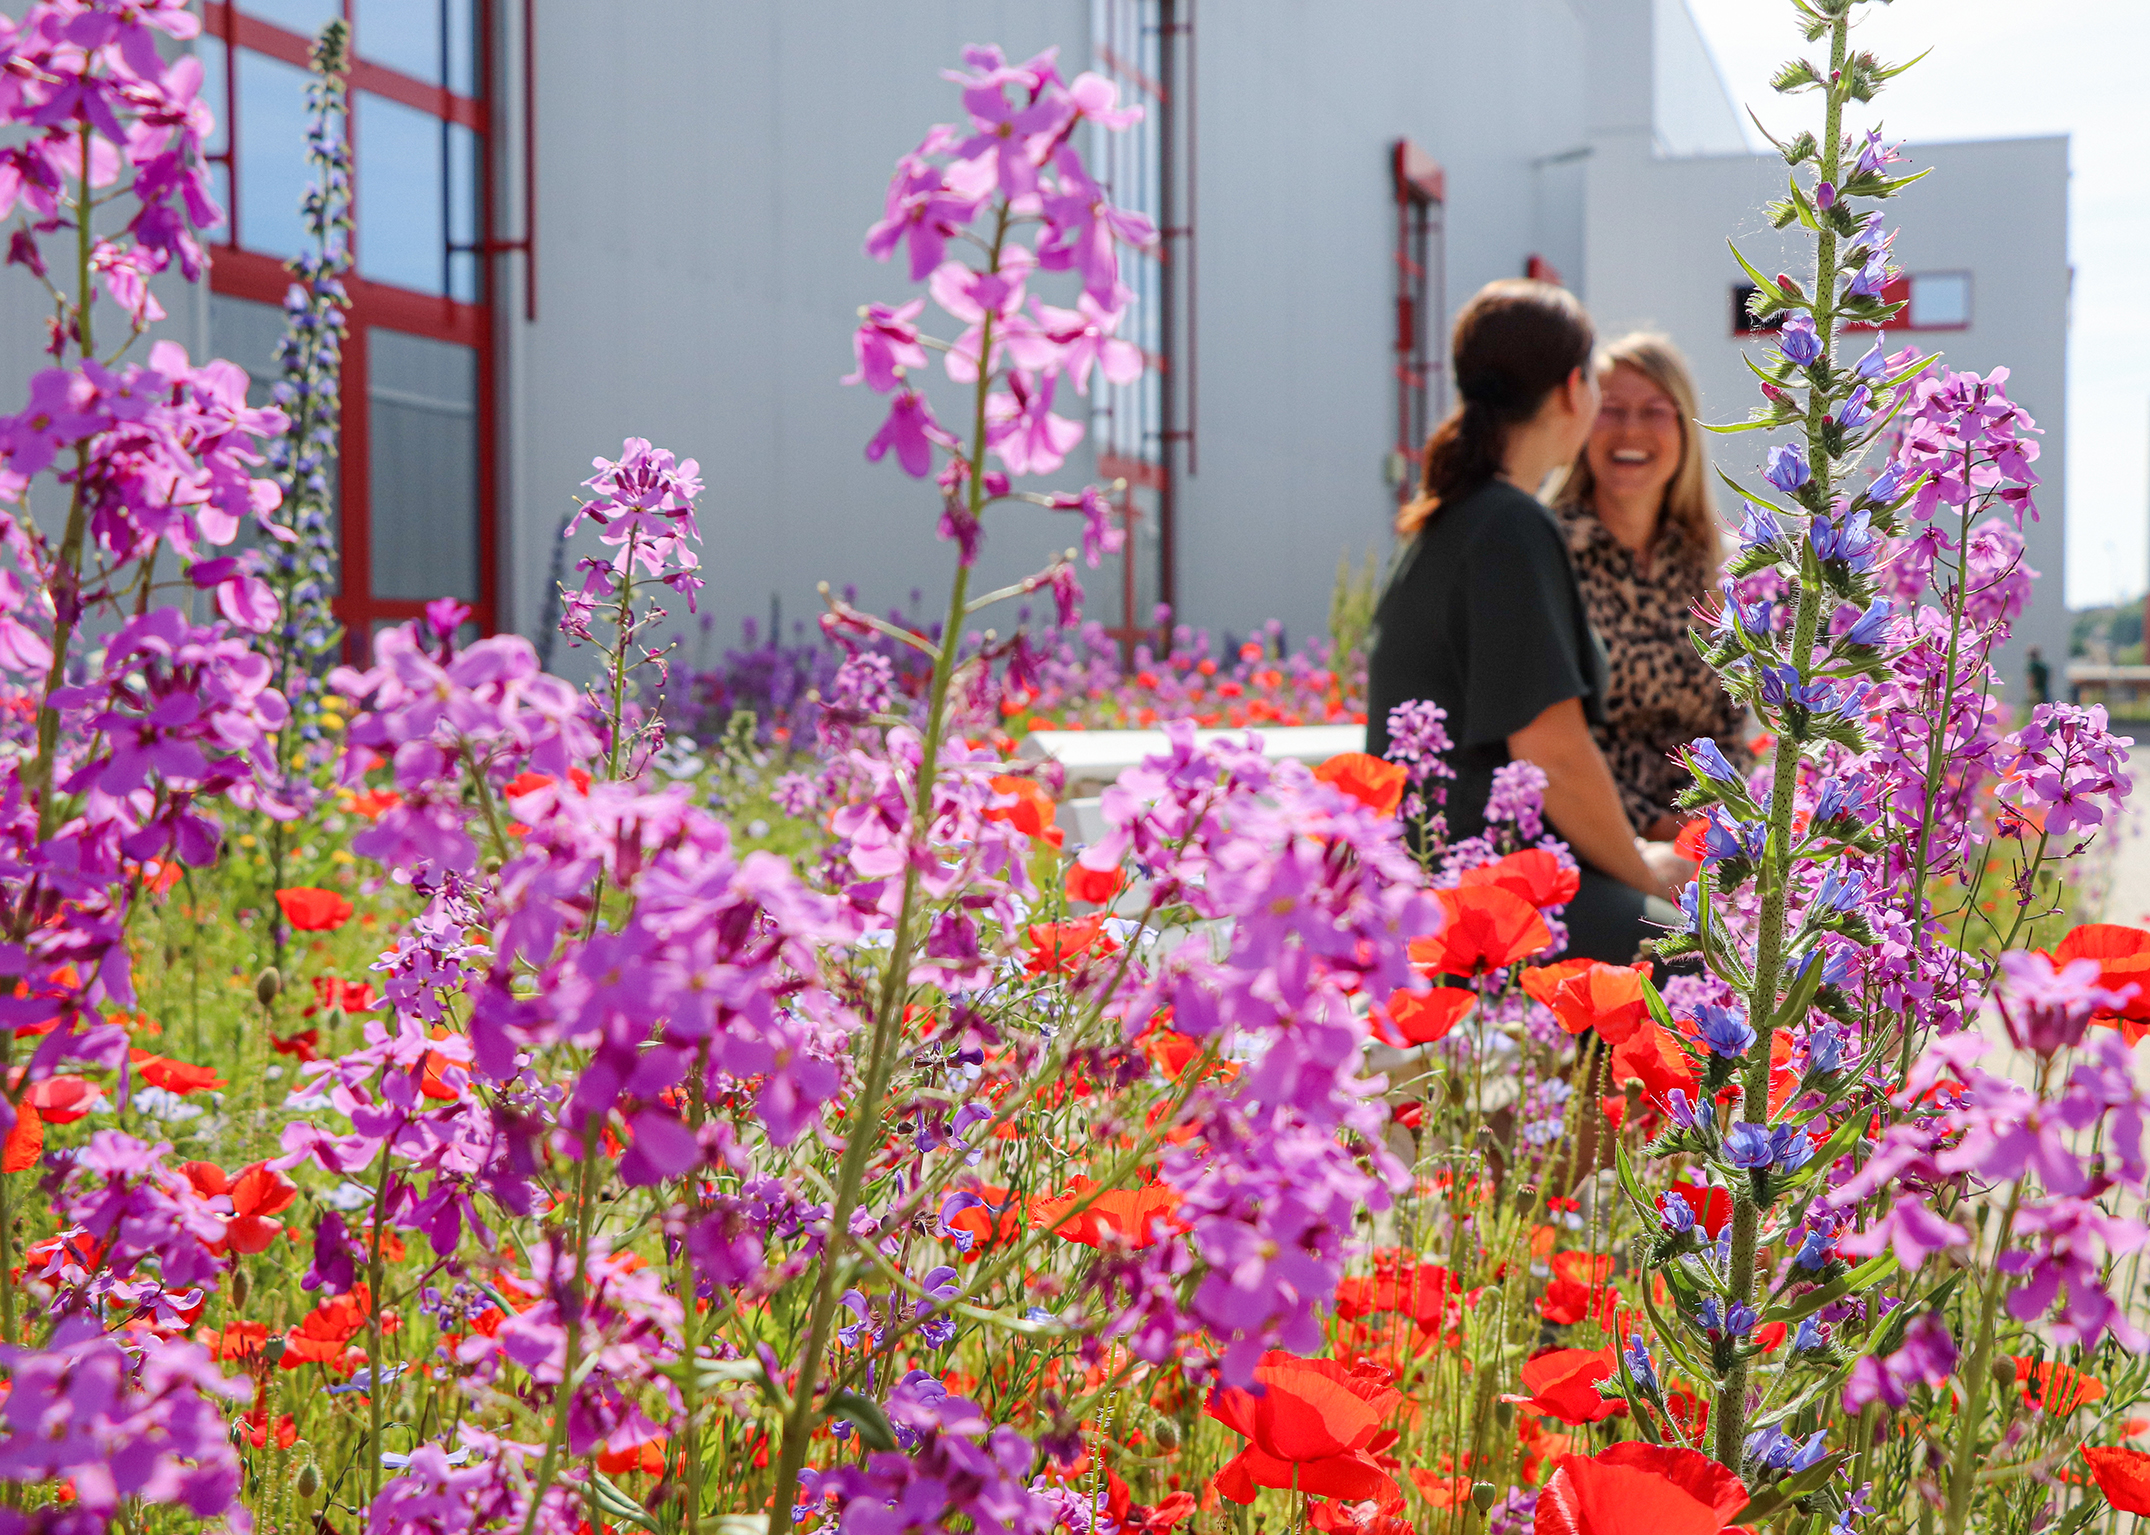 RAPA employees maintain insect protection meadow on company premises